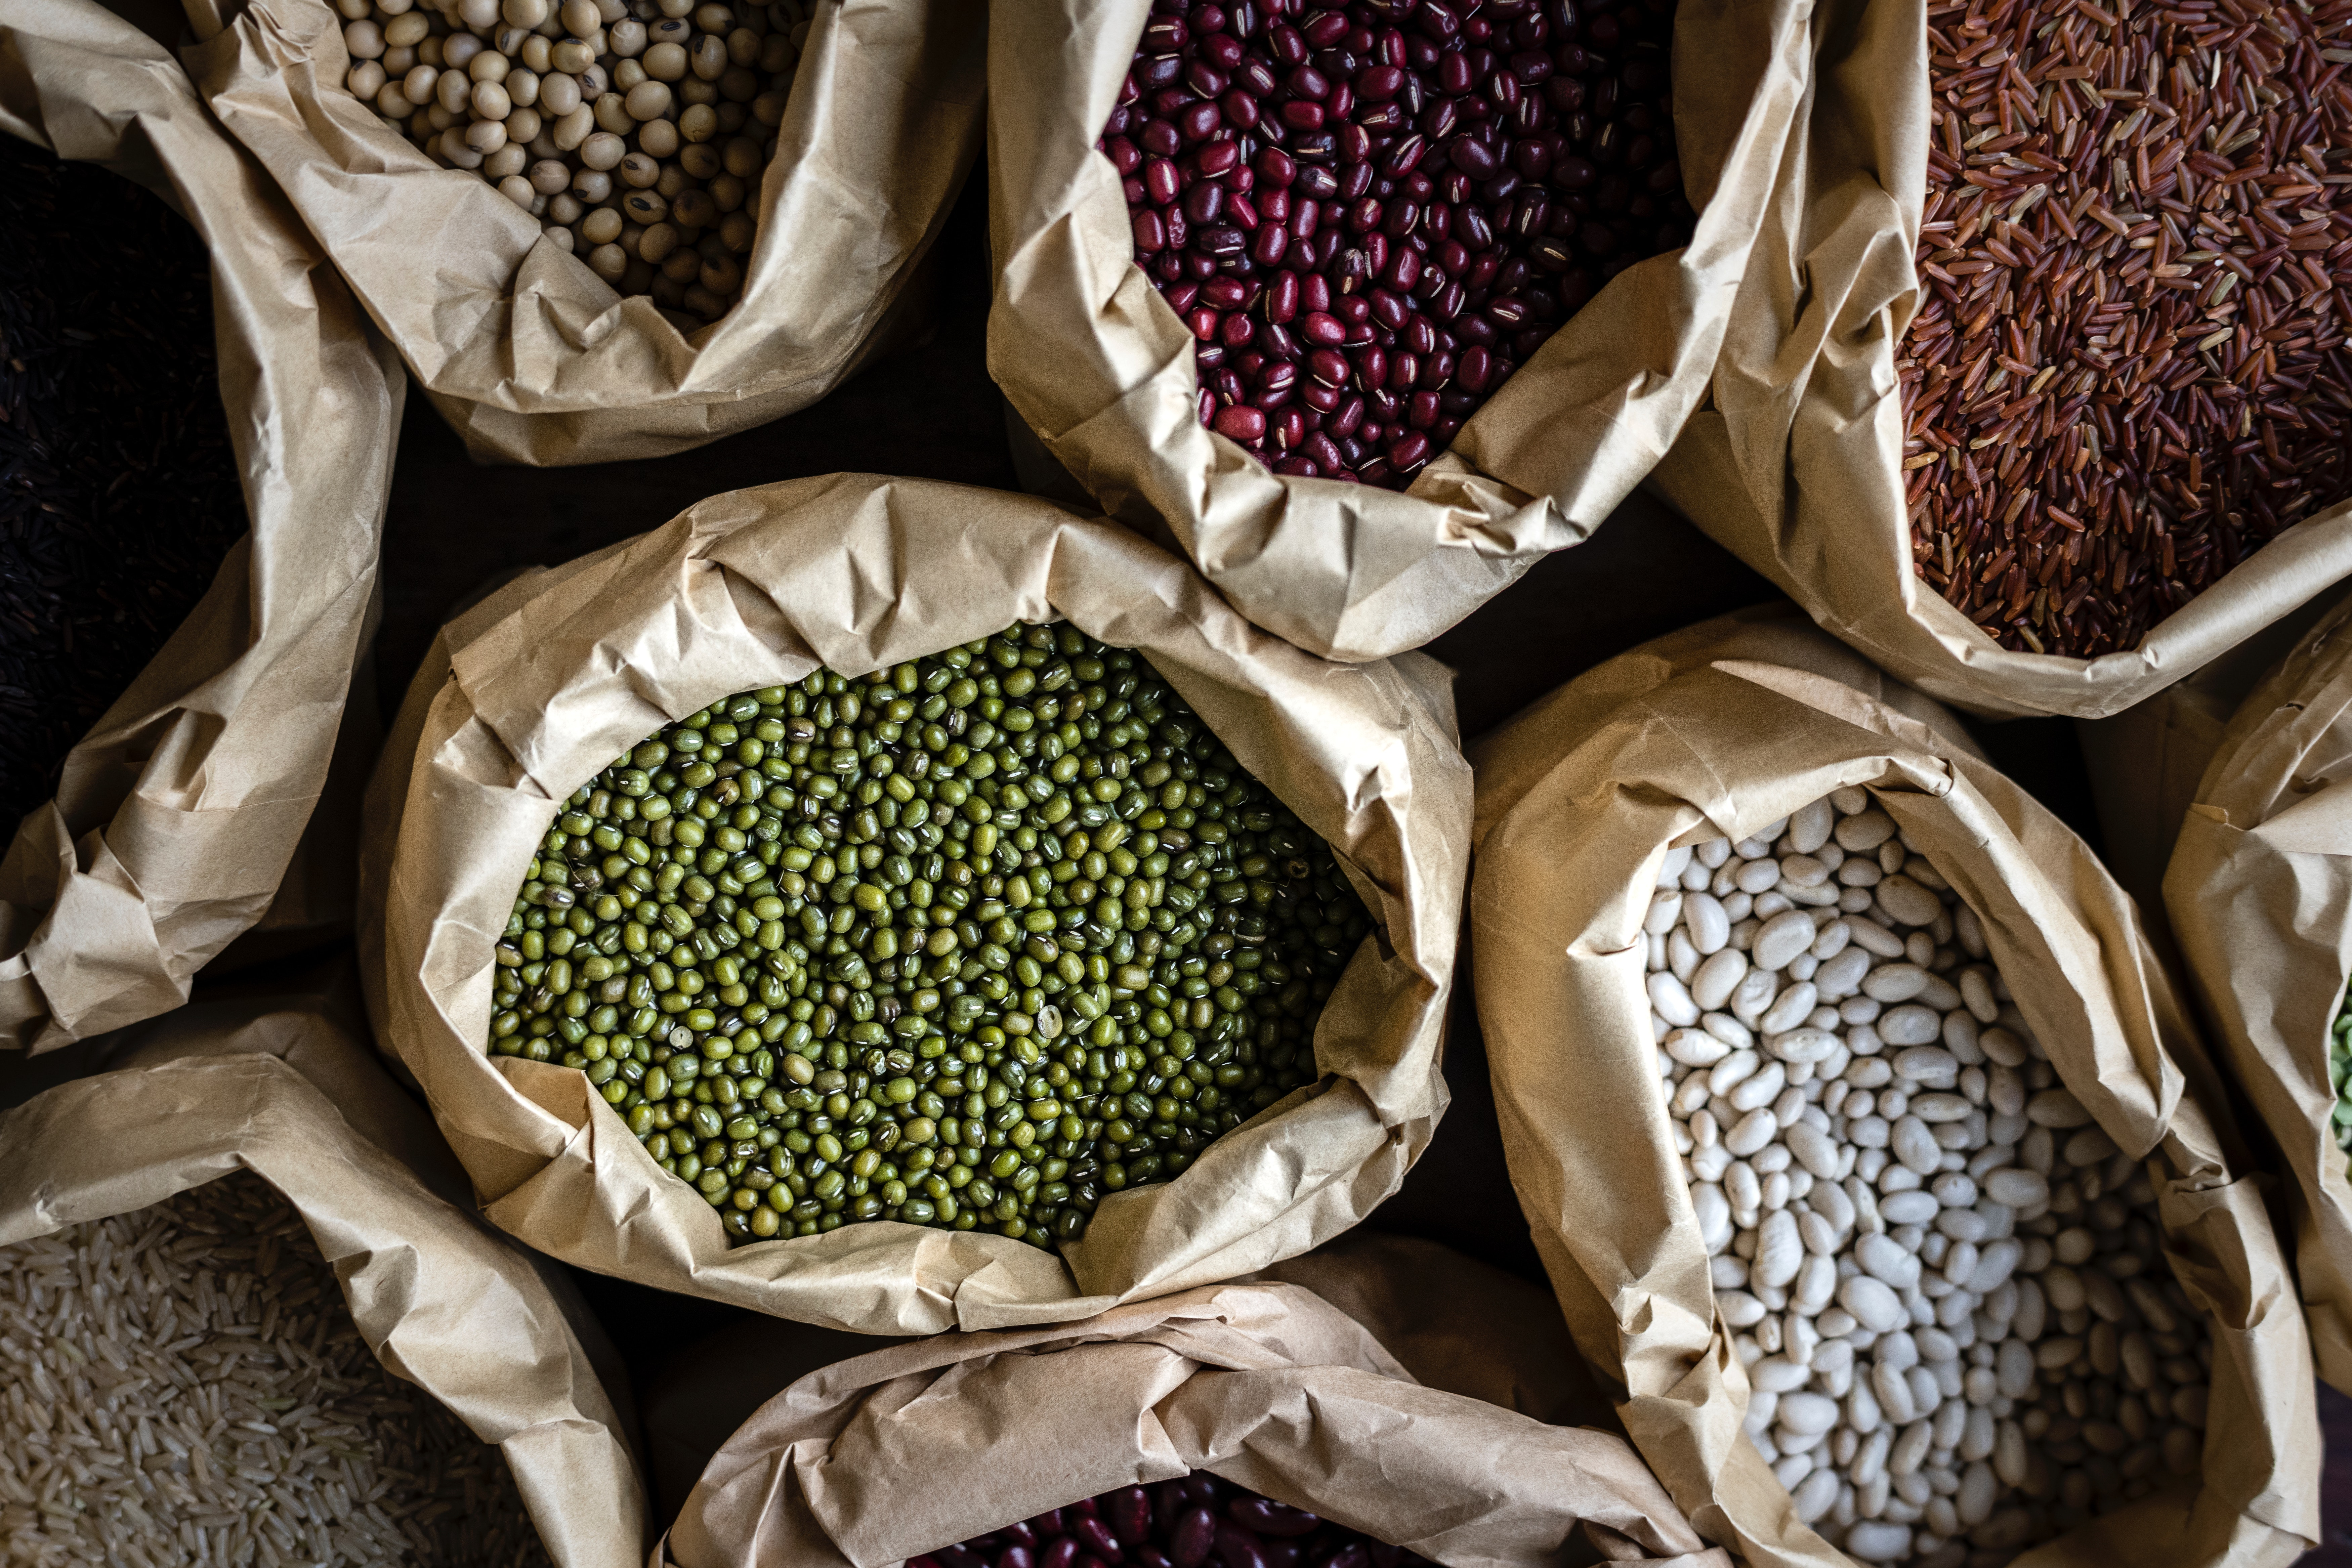 Pulses and beans. Source: Pexels.